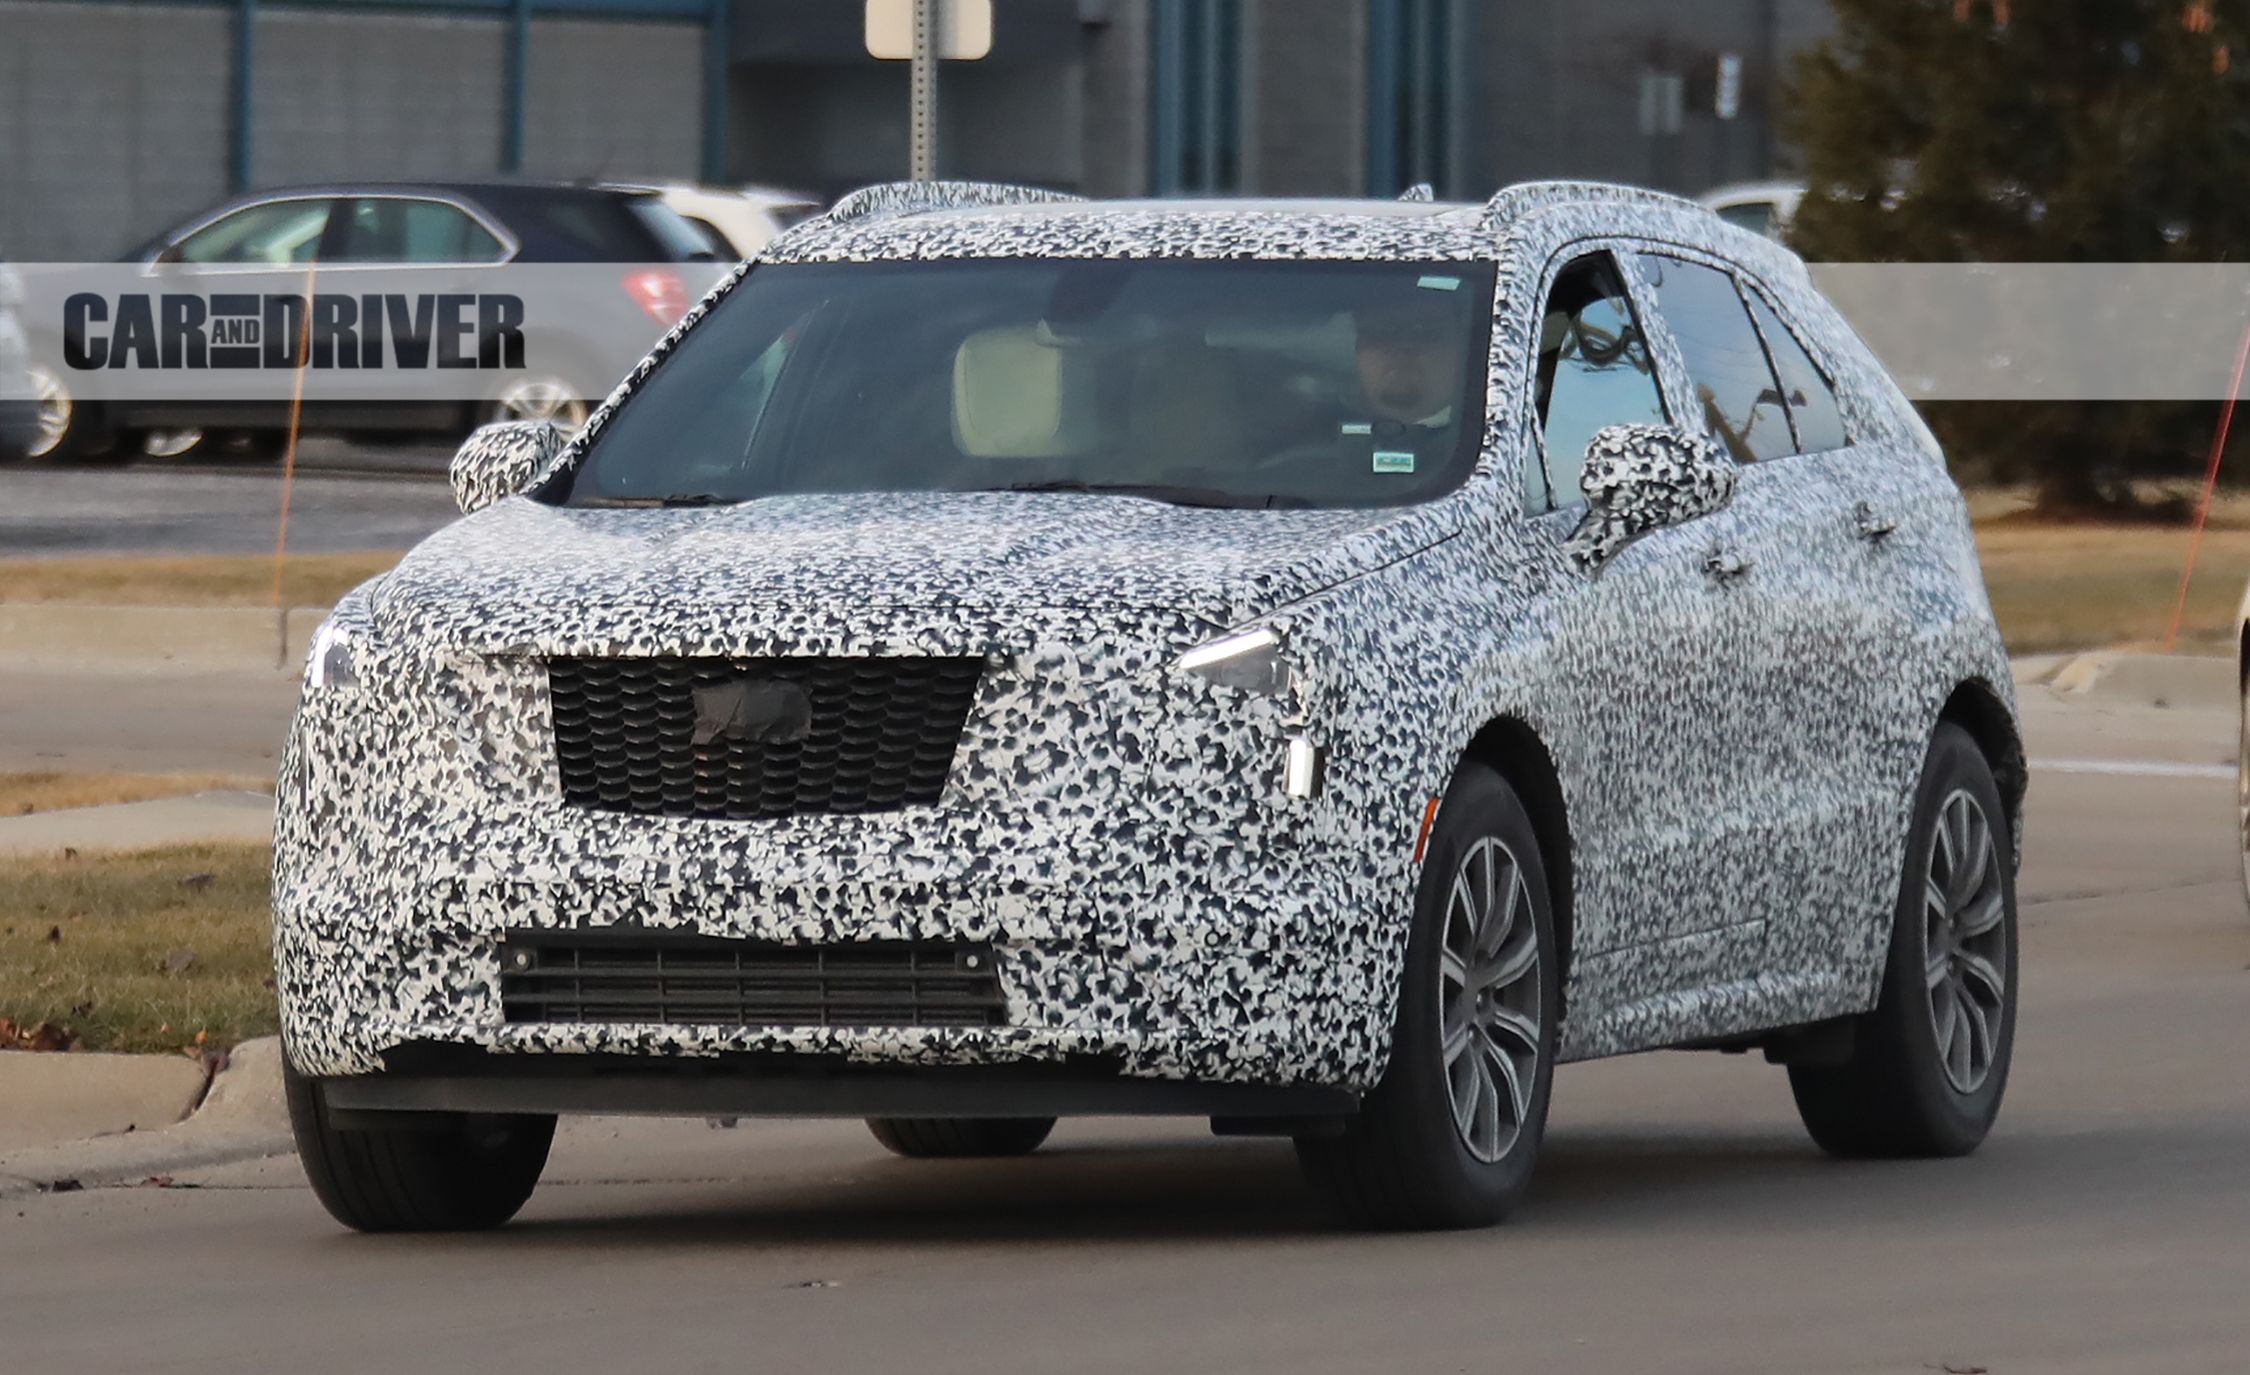 2019 Cadillac XT4 Crossover Spied | Future Cars | Car and ...